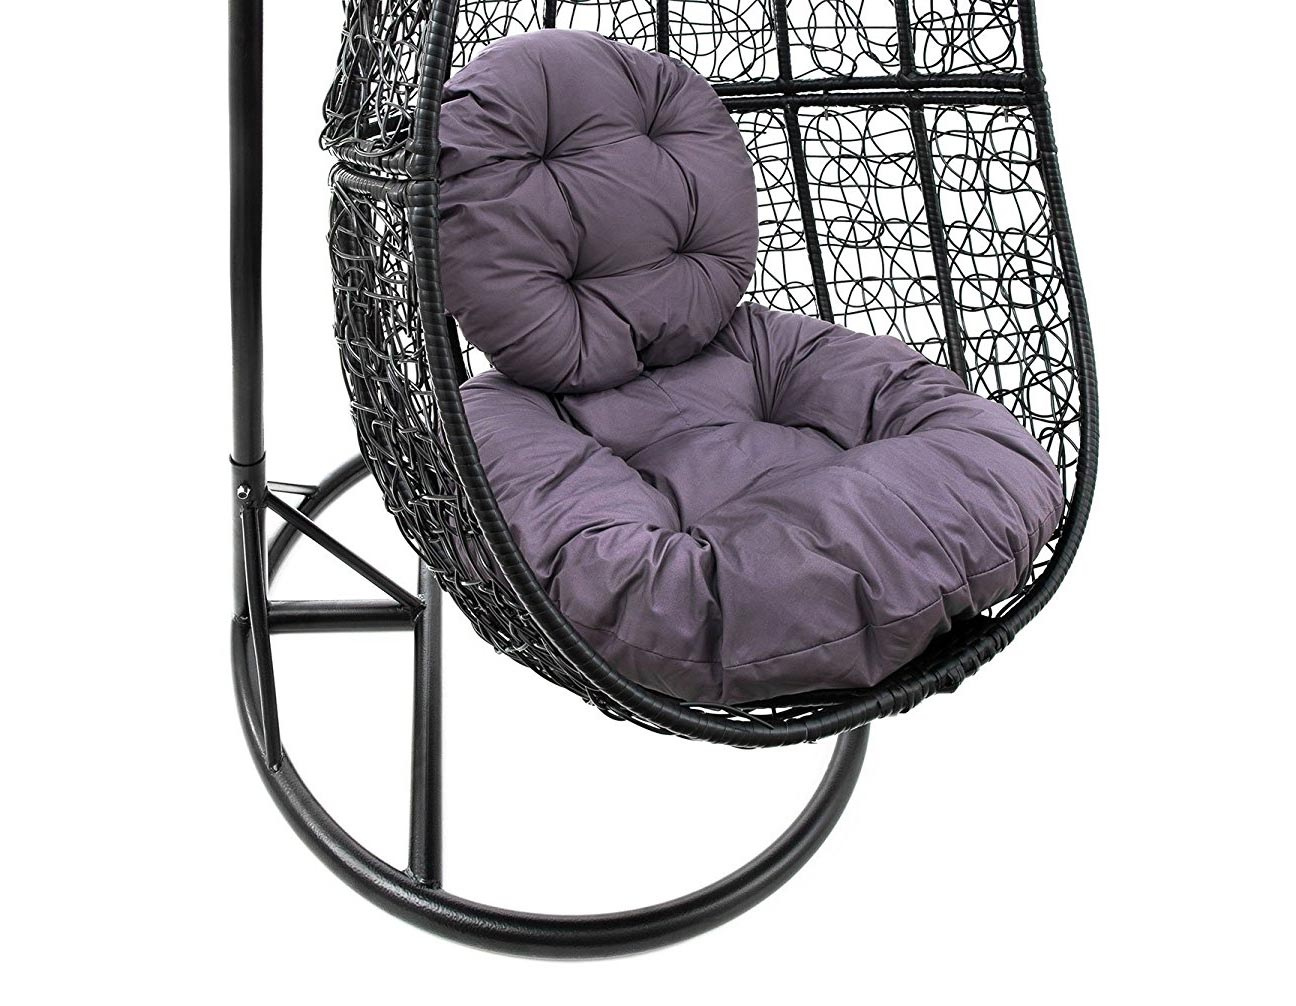 h ngesessel schaukel korb polyrattan mit gestell und sitzkissen bis 160 kg ebay. Black Bedroom Furniture Sets. Home Design Ideas